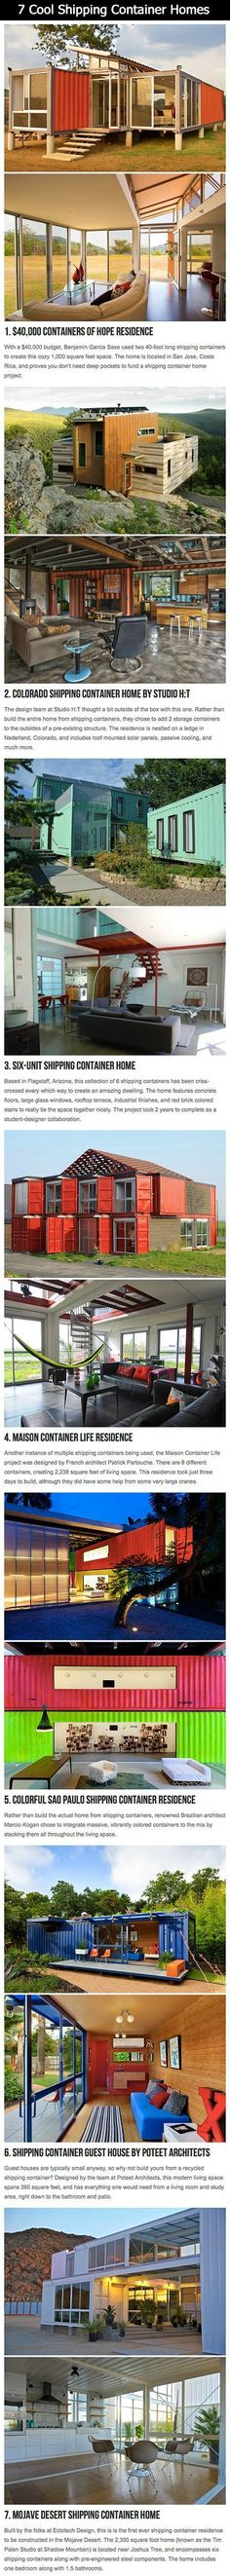 Container House 7 Extremely Cool and Creative Shipping Container Homes. Who Else Wants Simple Step-By-Step Plans To Design And Build A Container Home From Scratch? Container Home Designs, Building A Container Home, Container Cabin, Storage Container Homes, Container Buildings, Container Architecture, Cargo Container, Storage Containers, Shipping Container Swimming Pool